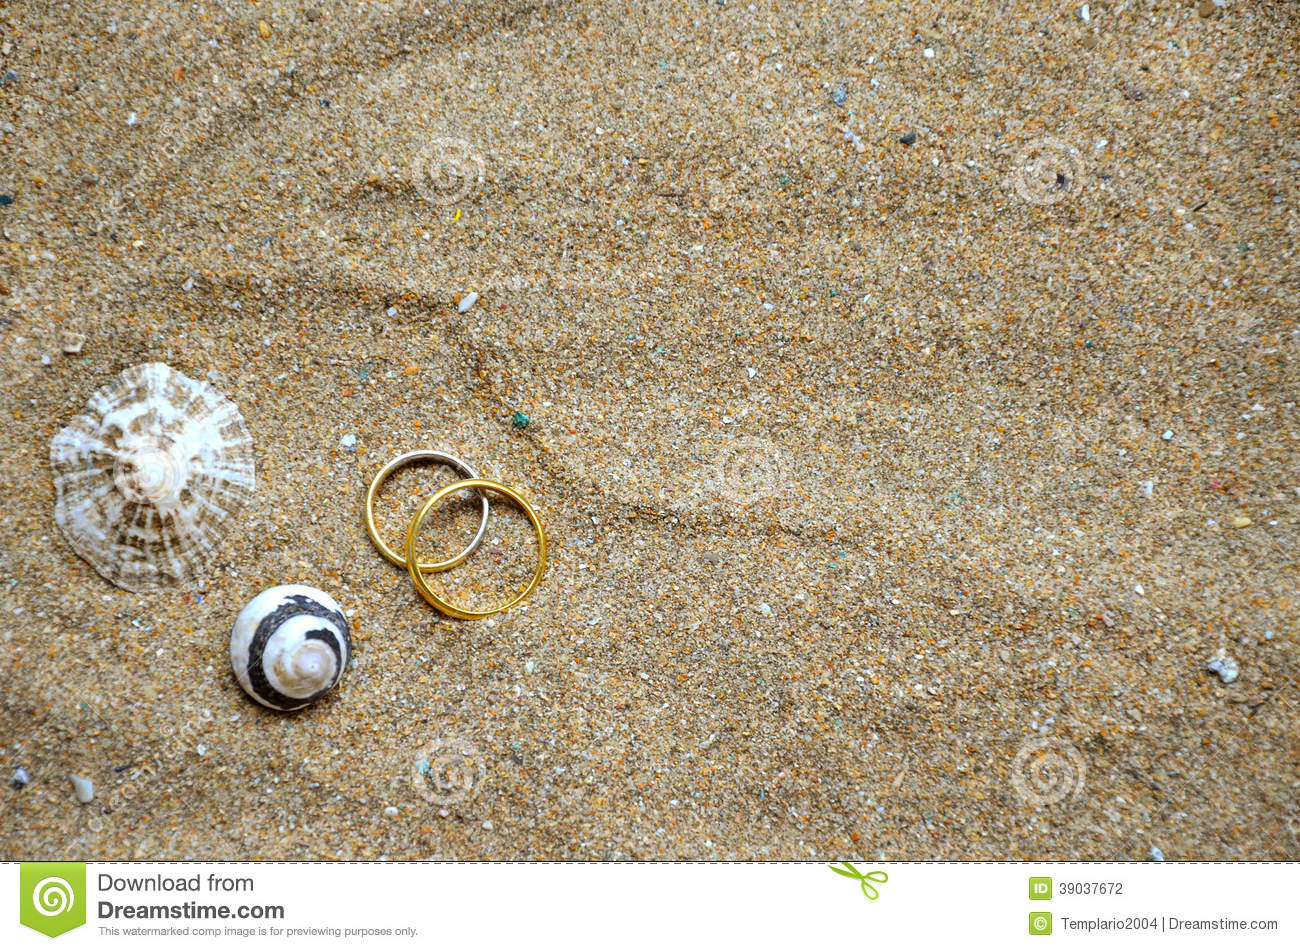 Seashells And Wedding Rings On The Sand Stock Photo. .85 Carat Engagement Rings. Eastern Star Rings. Promise Wedding Rings. Mothers Rings. Lotr Dwarf Wedding Rings. Gold Chinese Wedding Rings. Lotus Flower Engagement Rings. Angagement Engagement Rings